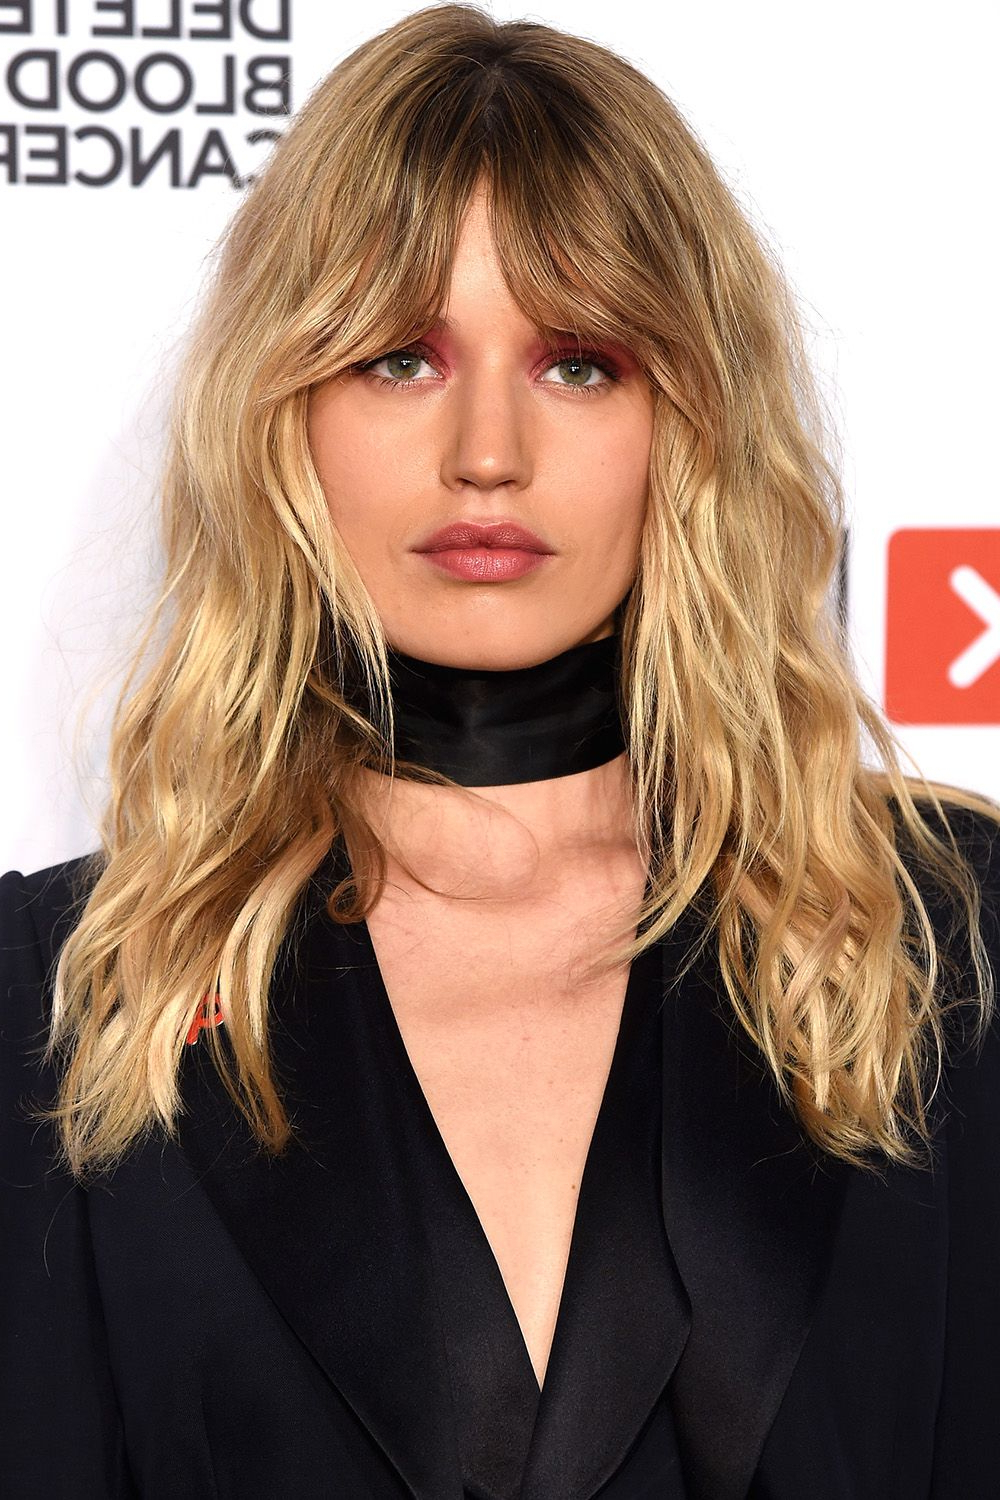 2017 Blunt Cut Medium Hairstyles With 40 Best Medium Hairstyles – Celebrities With Shoulder Length Haircuts (View 1 of 20)